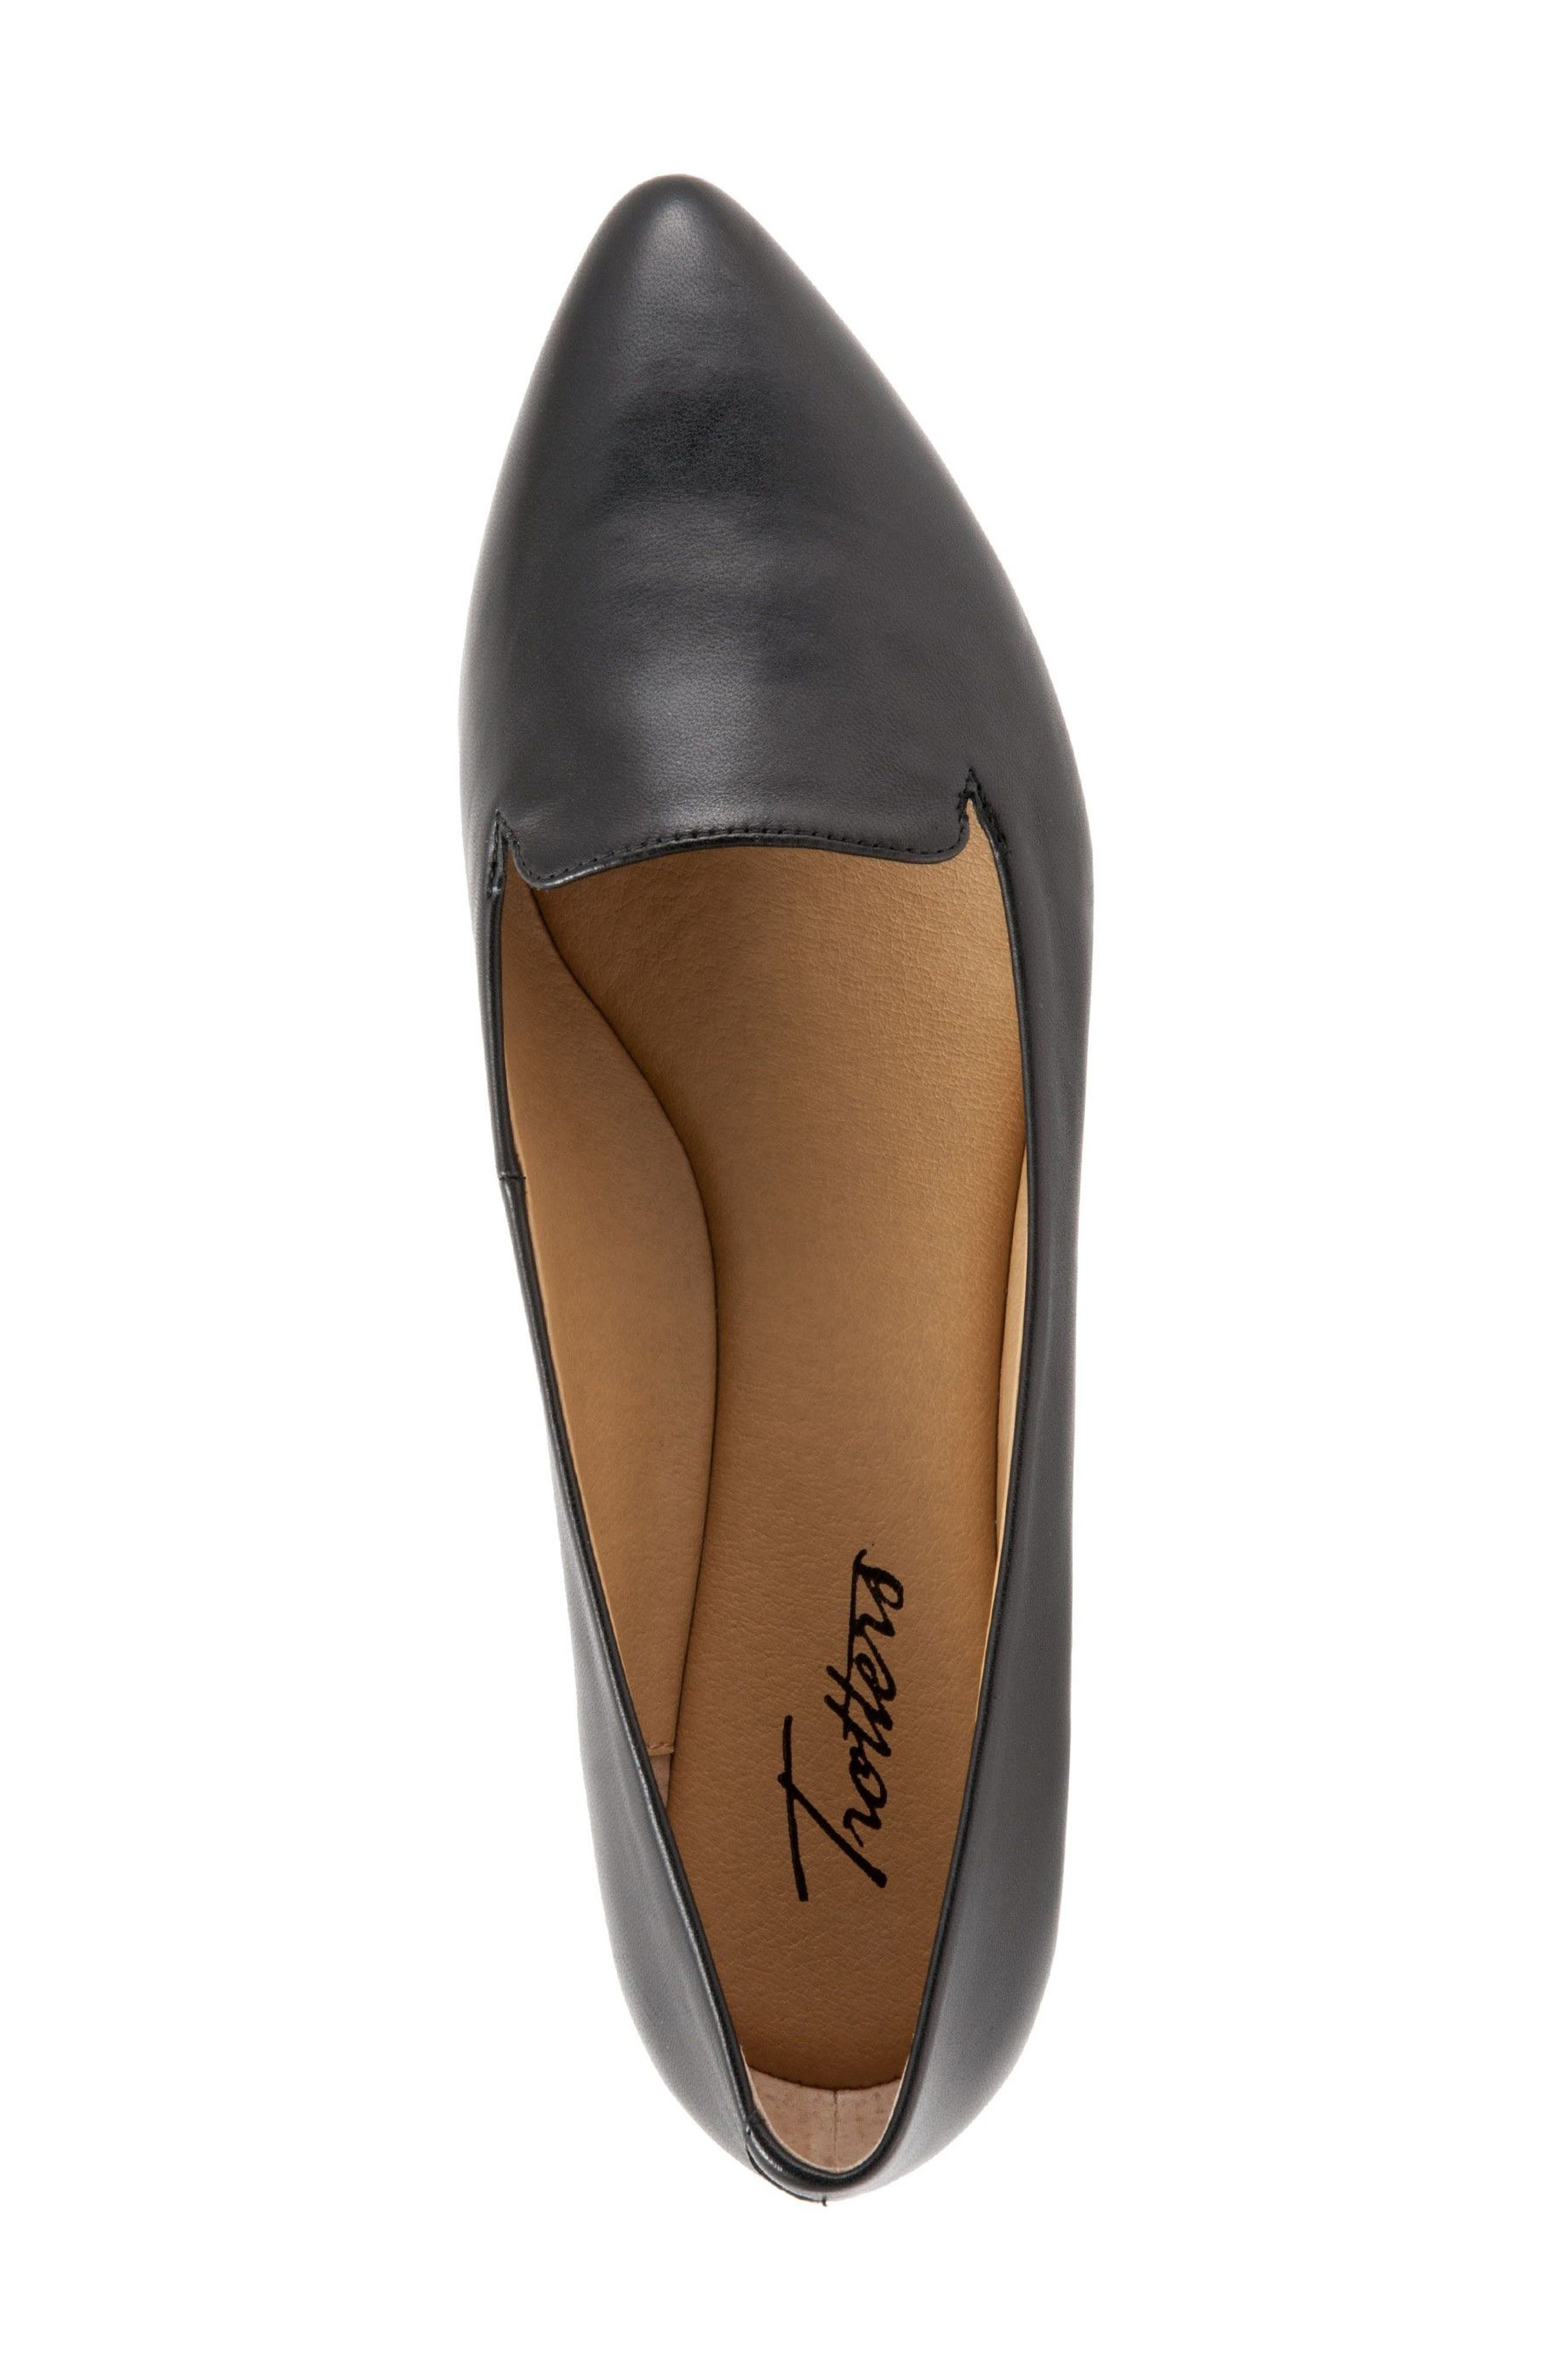 TROTTERS, Harlowe Pointy Toe Loafer, Alternate thumbnail 3, color, BLACK LEATHER